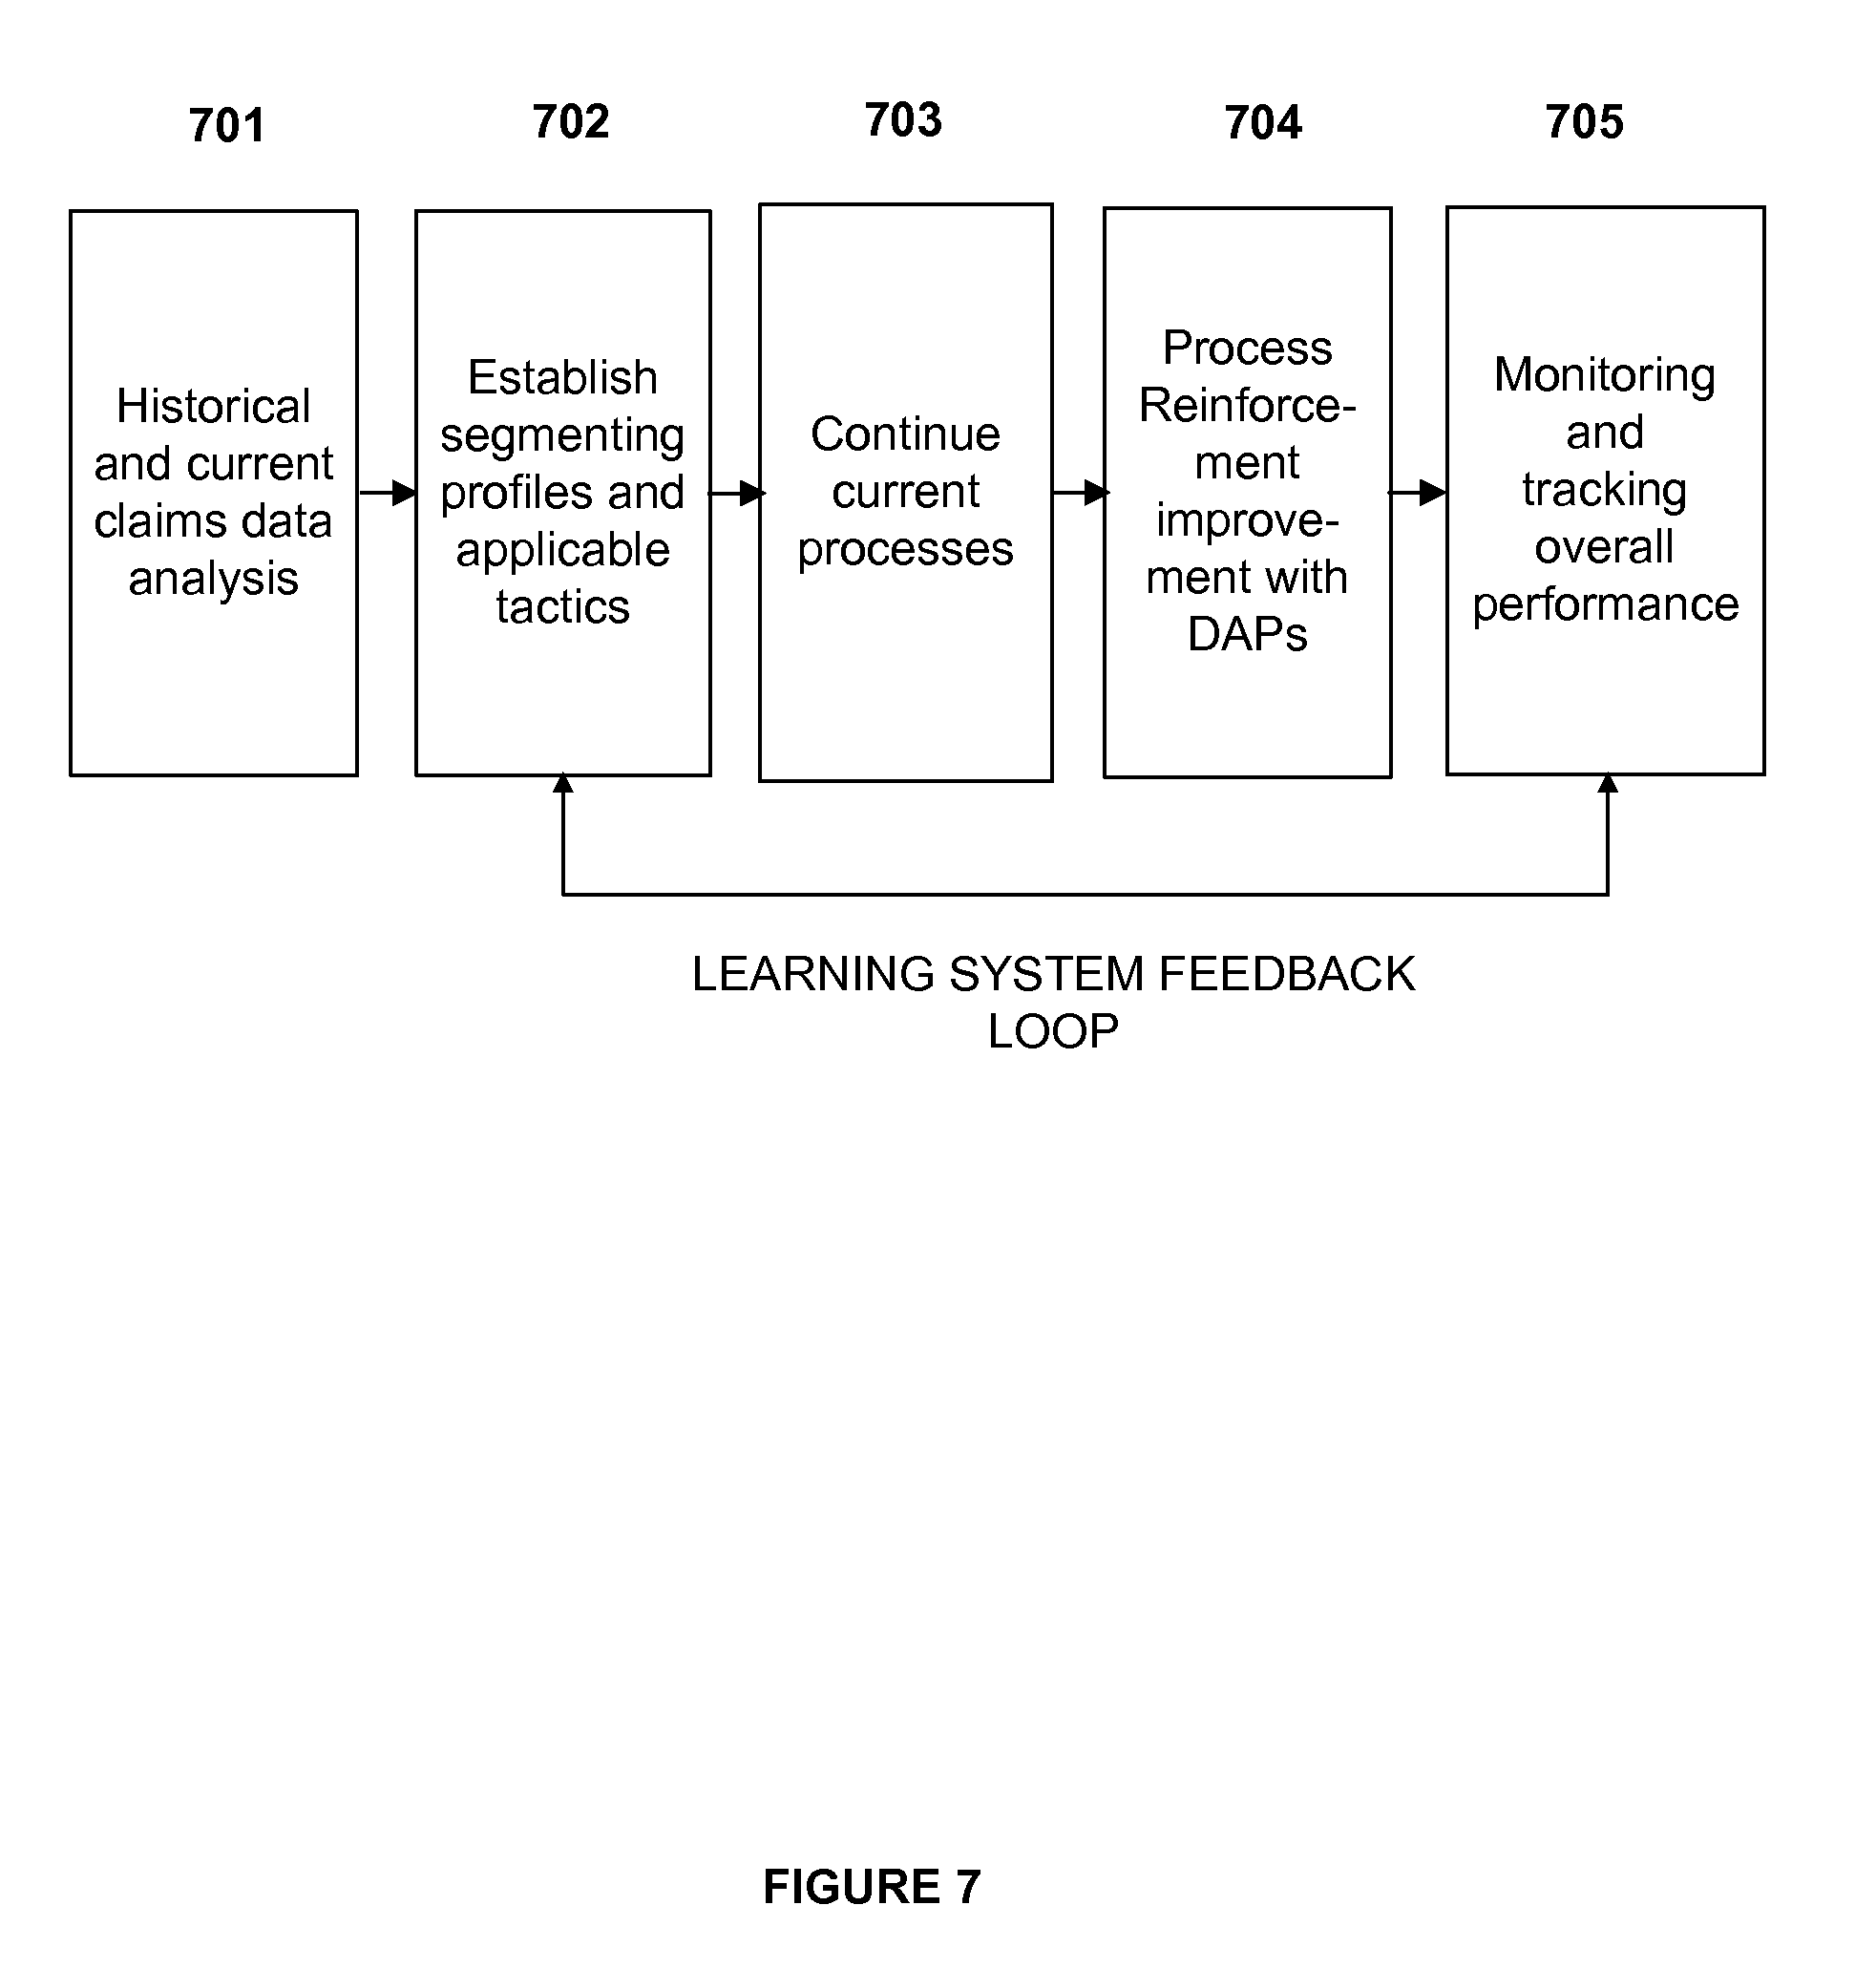 google organizational processes Management and organizational processes: an underlying rhetorical model charles e beck, university of colorado at colorado springs gary r schornack, university of colorado at denver abstract a rhetorical process model of communication can serve as a paradigm for analyzing typical.